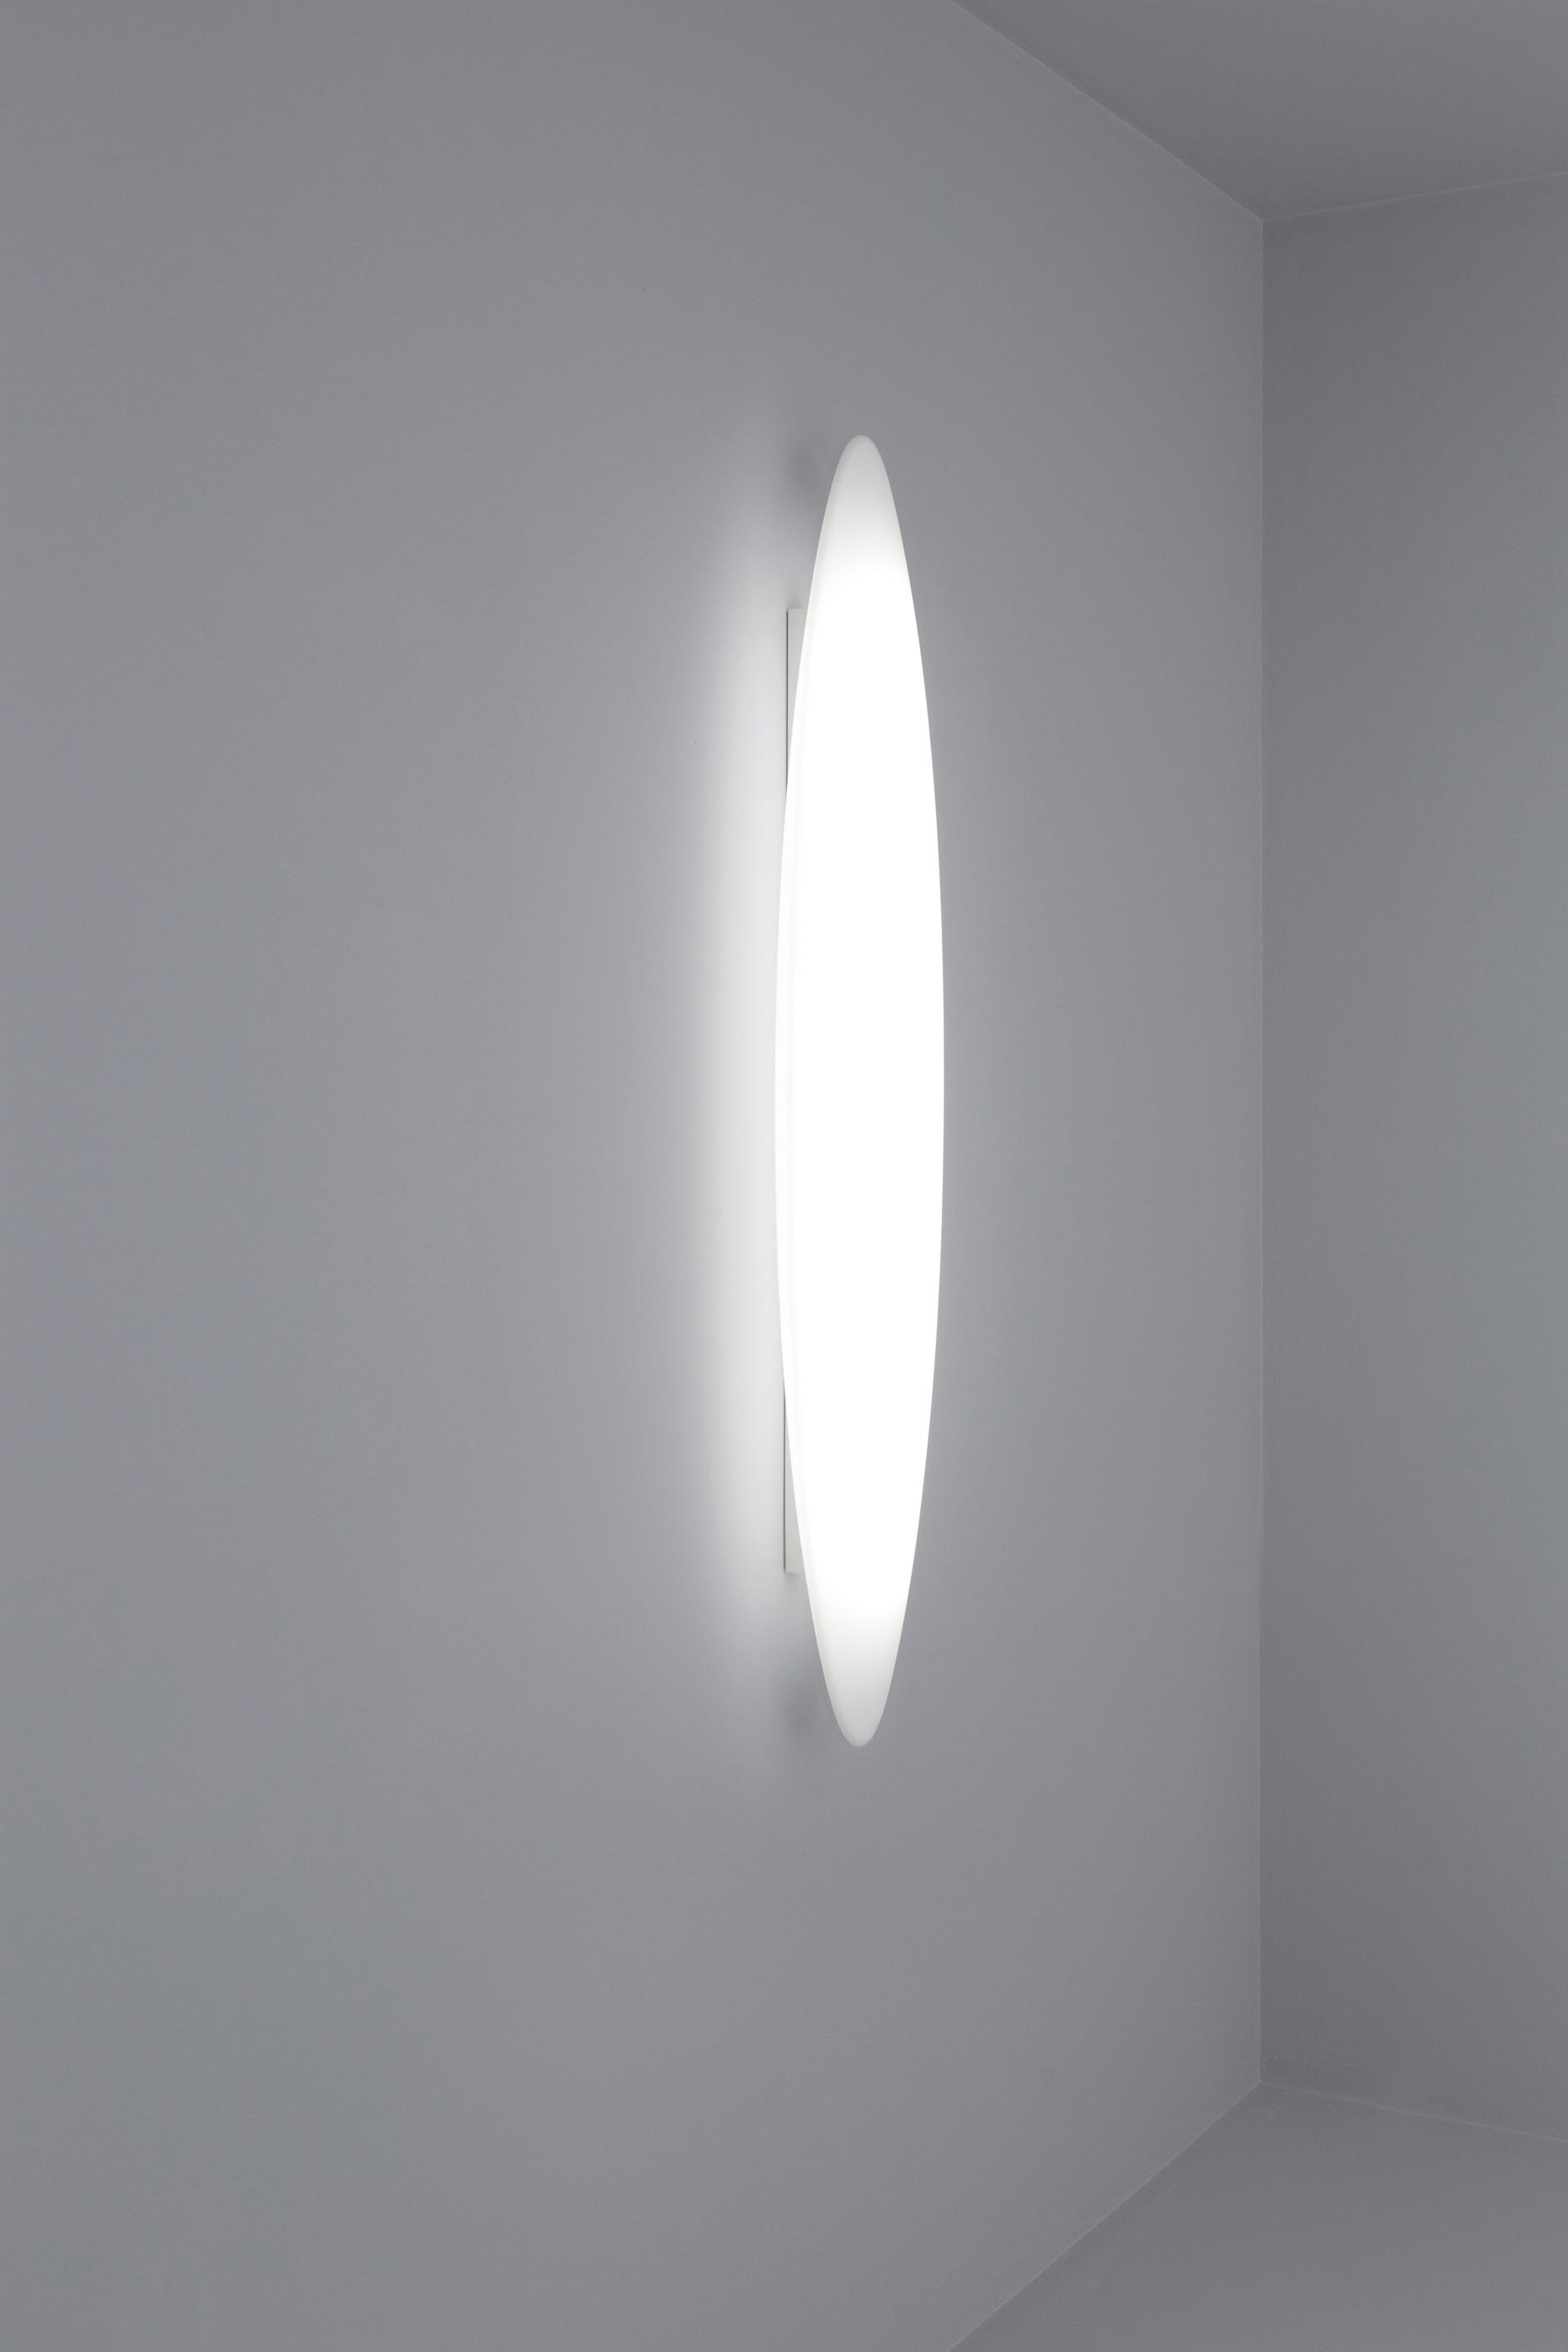 Sharp Pro Wall/ceiling By Aqlus | Wall Lights ...